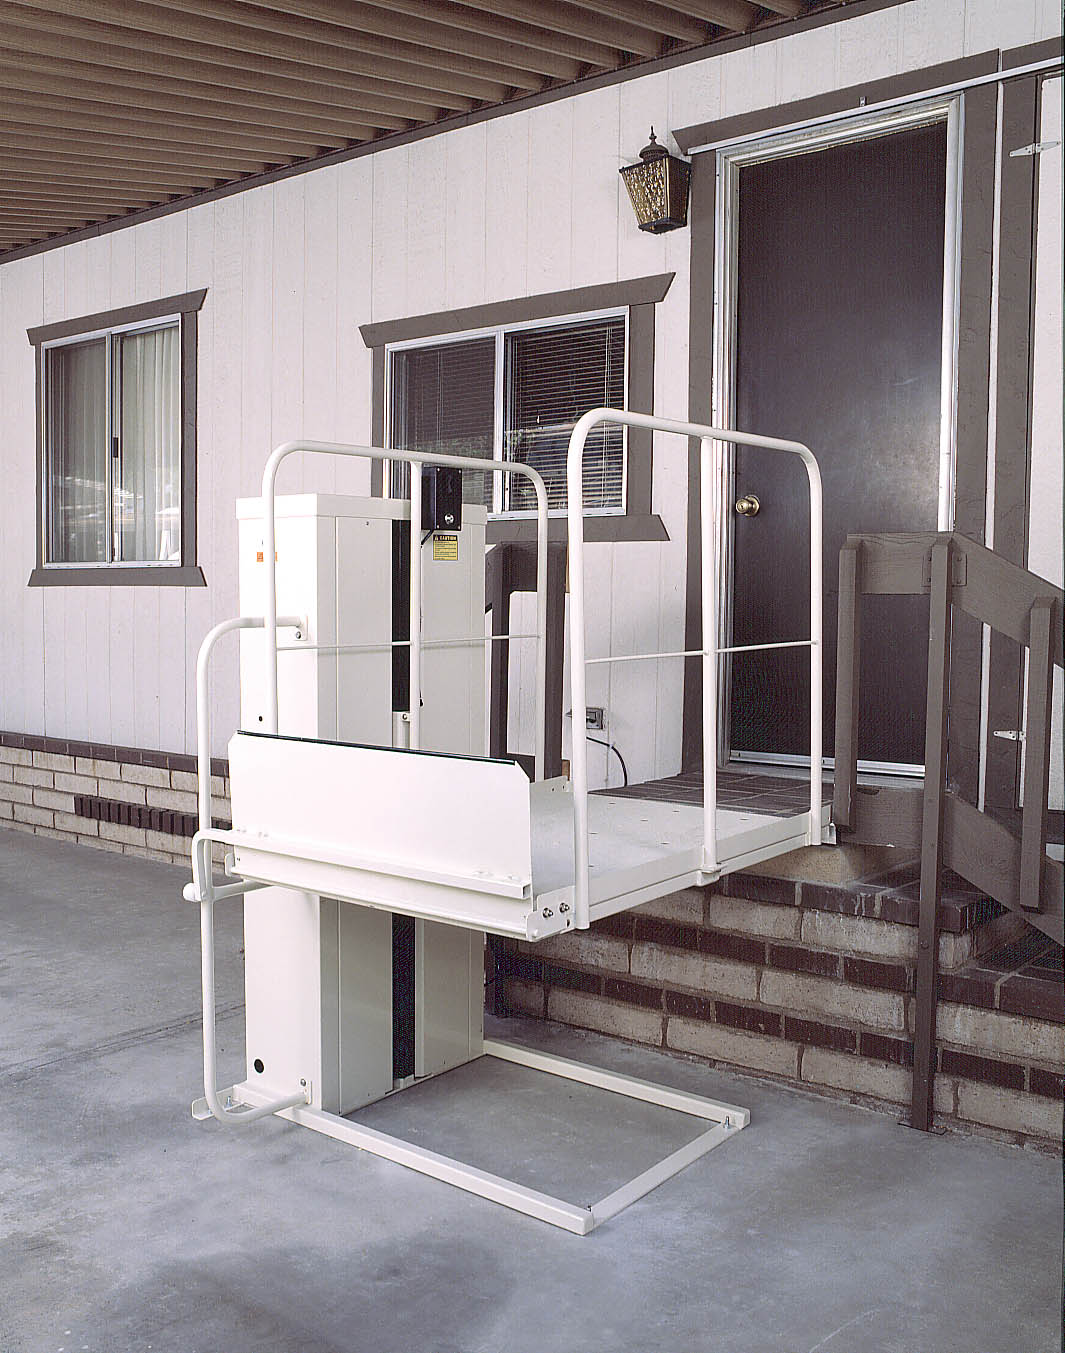 Residential Wheelchair Lift : Wheelchair lifts commercial and residential elevators